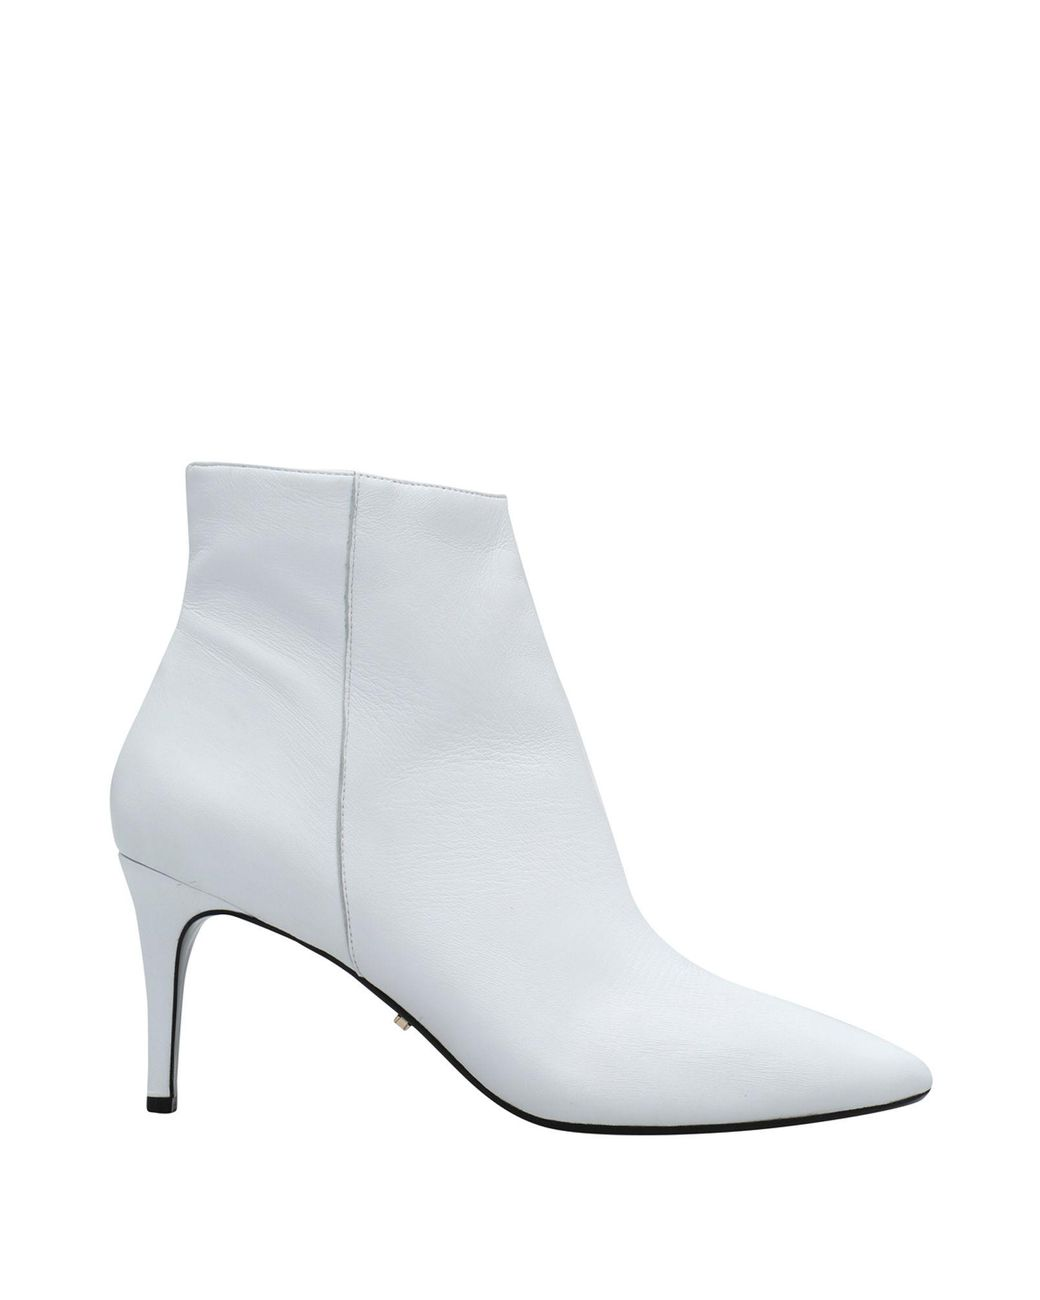 Dune Leather Ankle Boots in White - Lyst